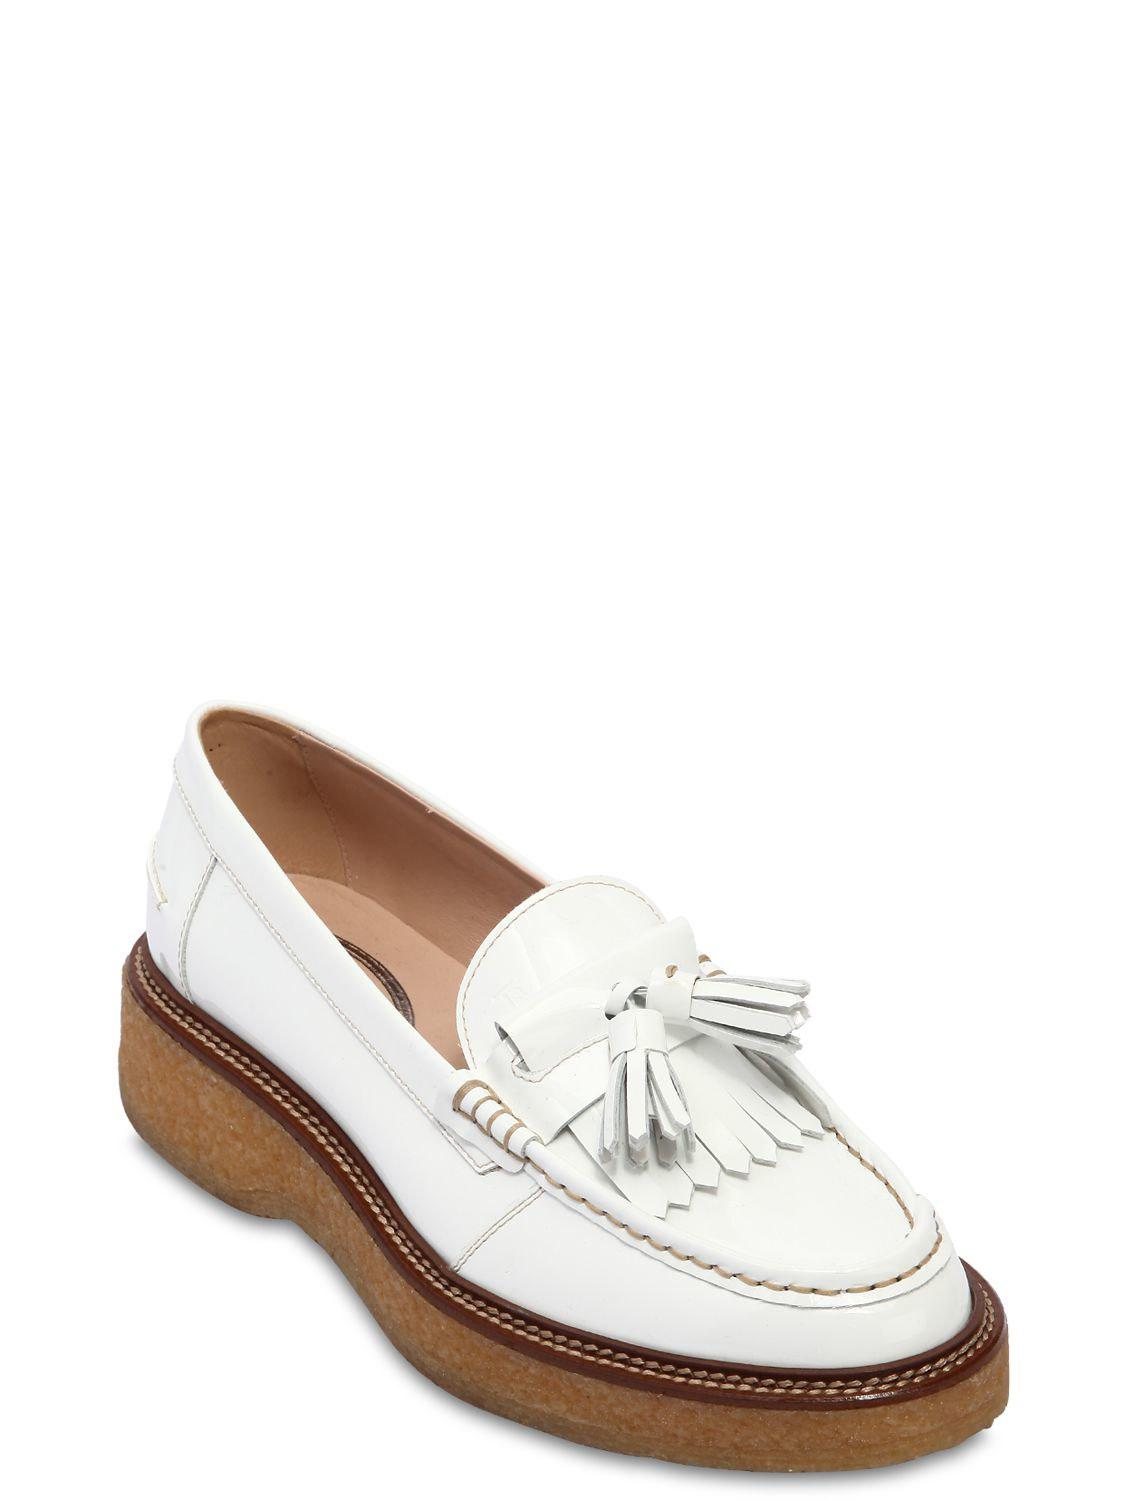 1f8da87dbe8 Tod s 35mm Tasseled Patent Leather Loafers in White - Lyst